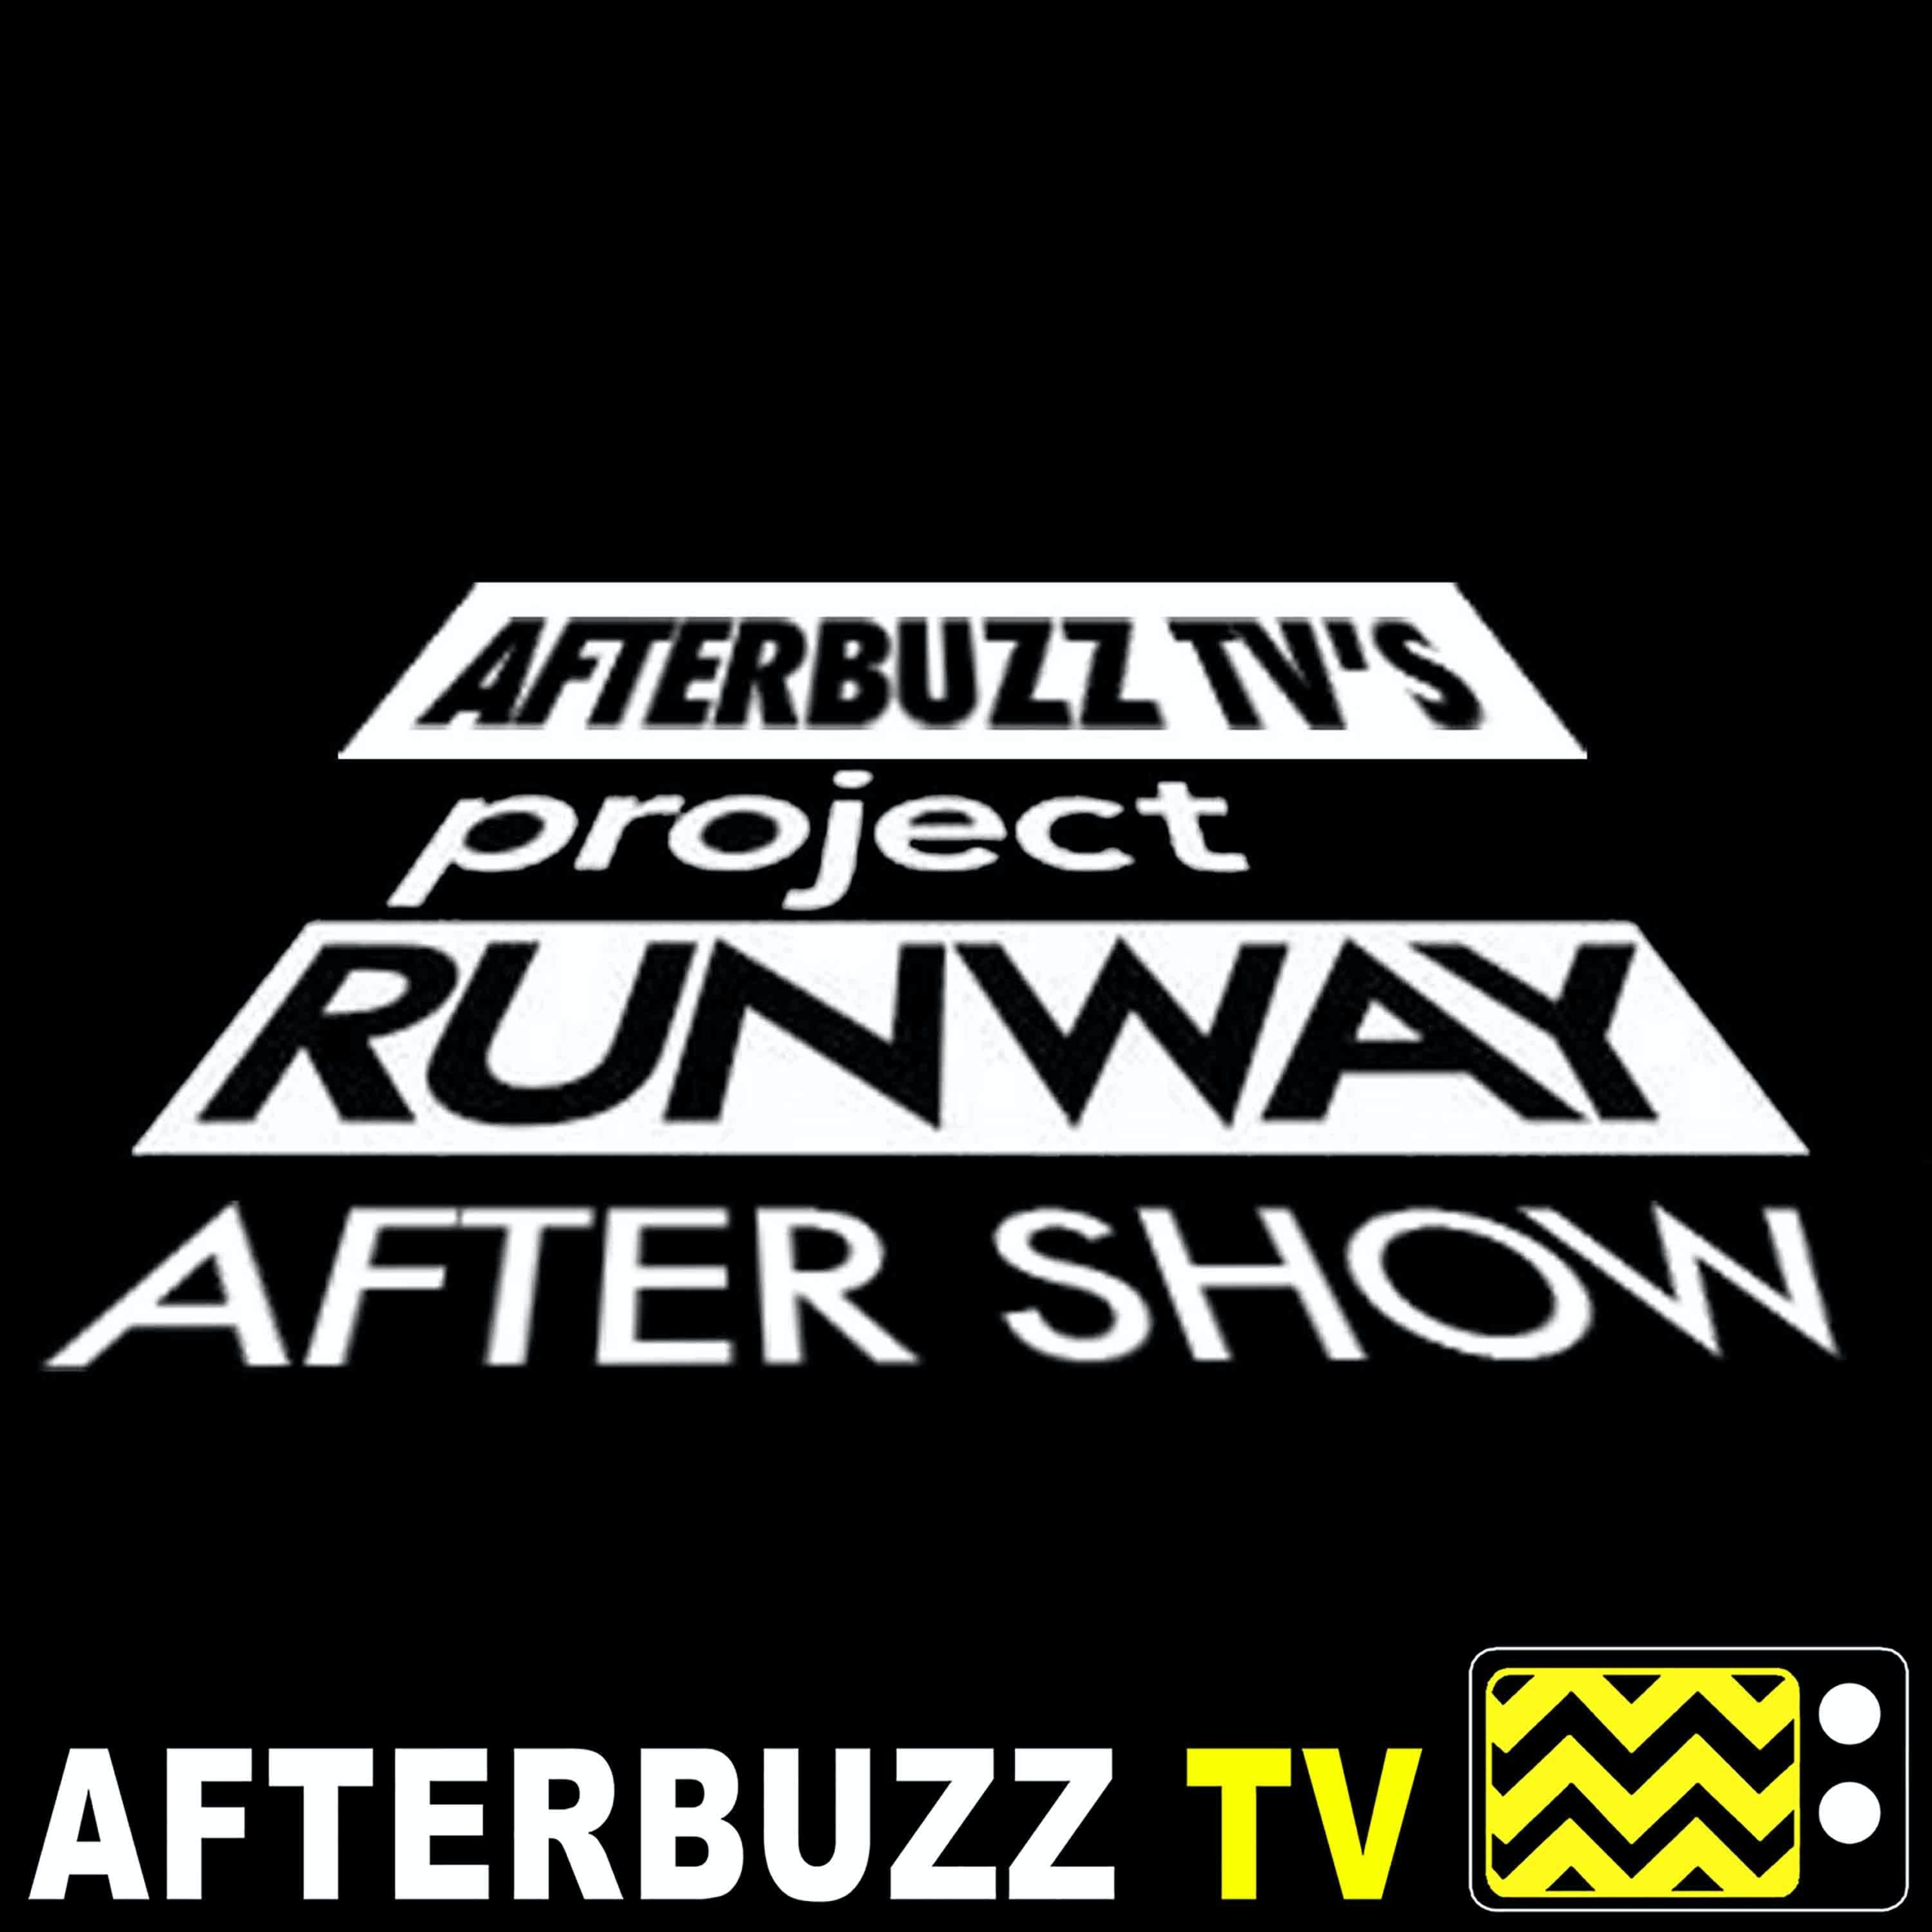 The Project Runway After Show Podcast